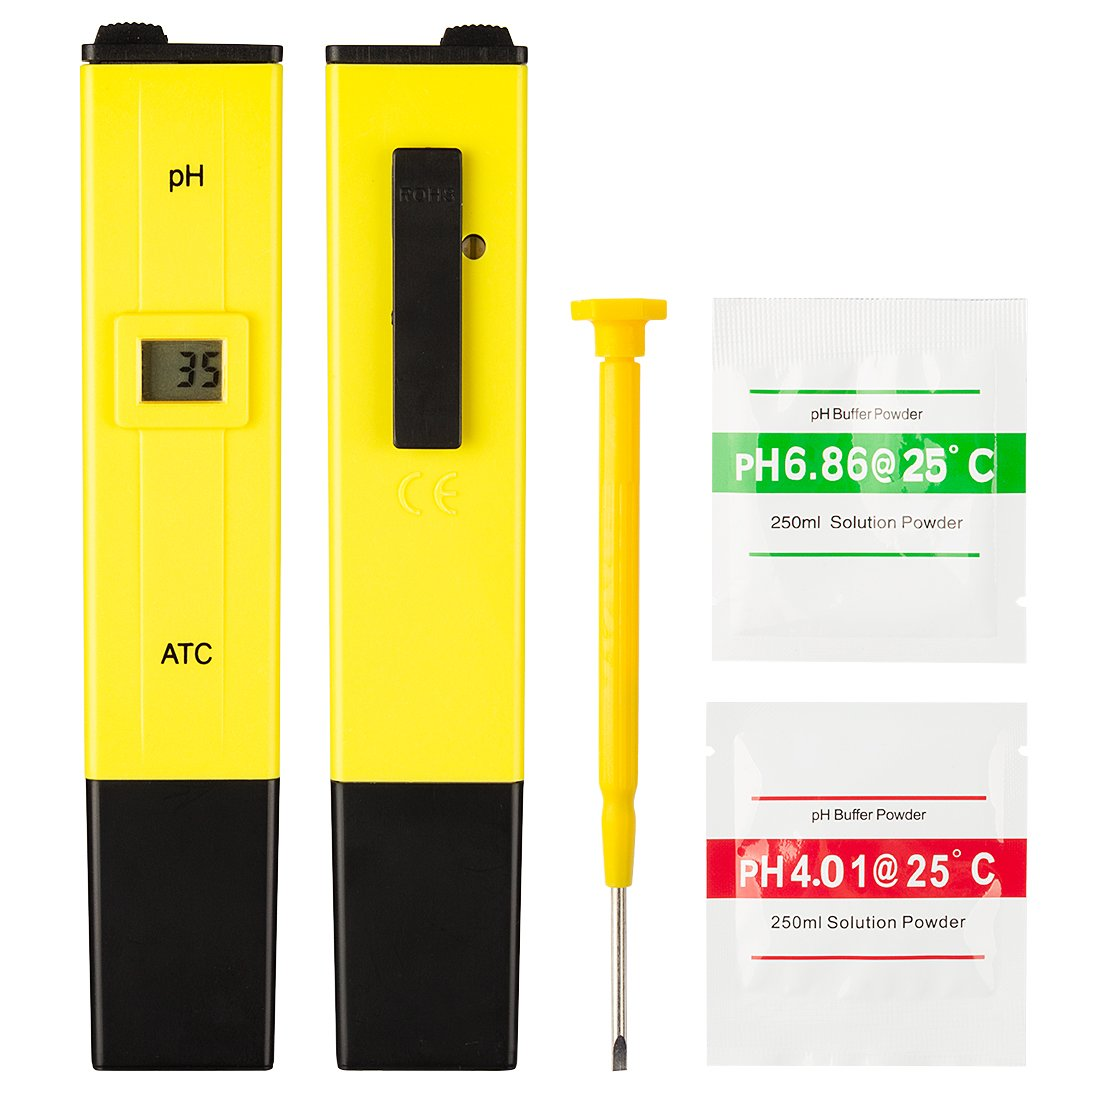 uxcell Mini Pocket Size Digital PH Meter/Tester High Accuracy Household for PH 0-14 Water Quality Test and ATC Add-on 2 Packs Buffer Powder for Calibration Yellow